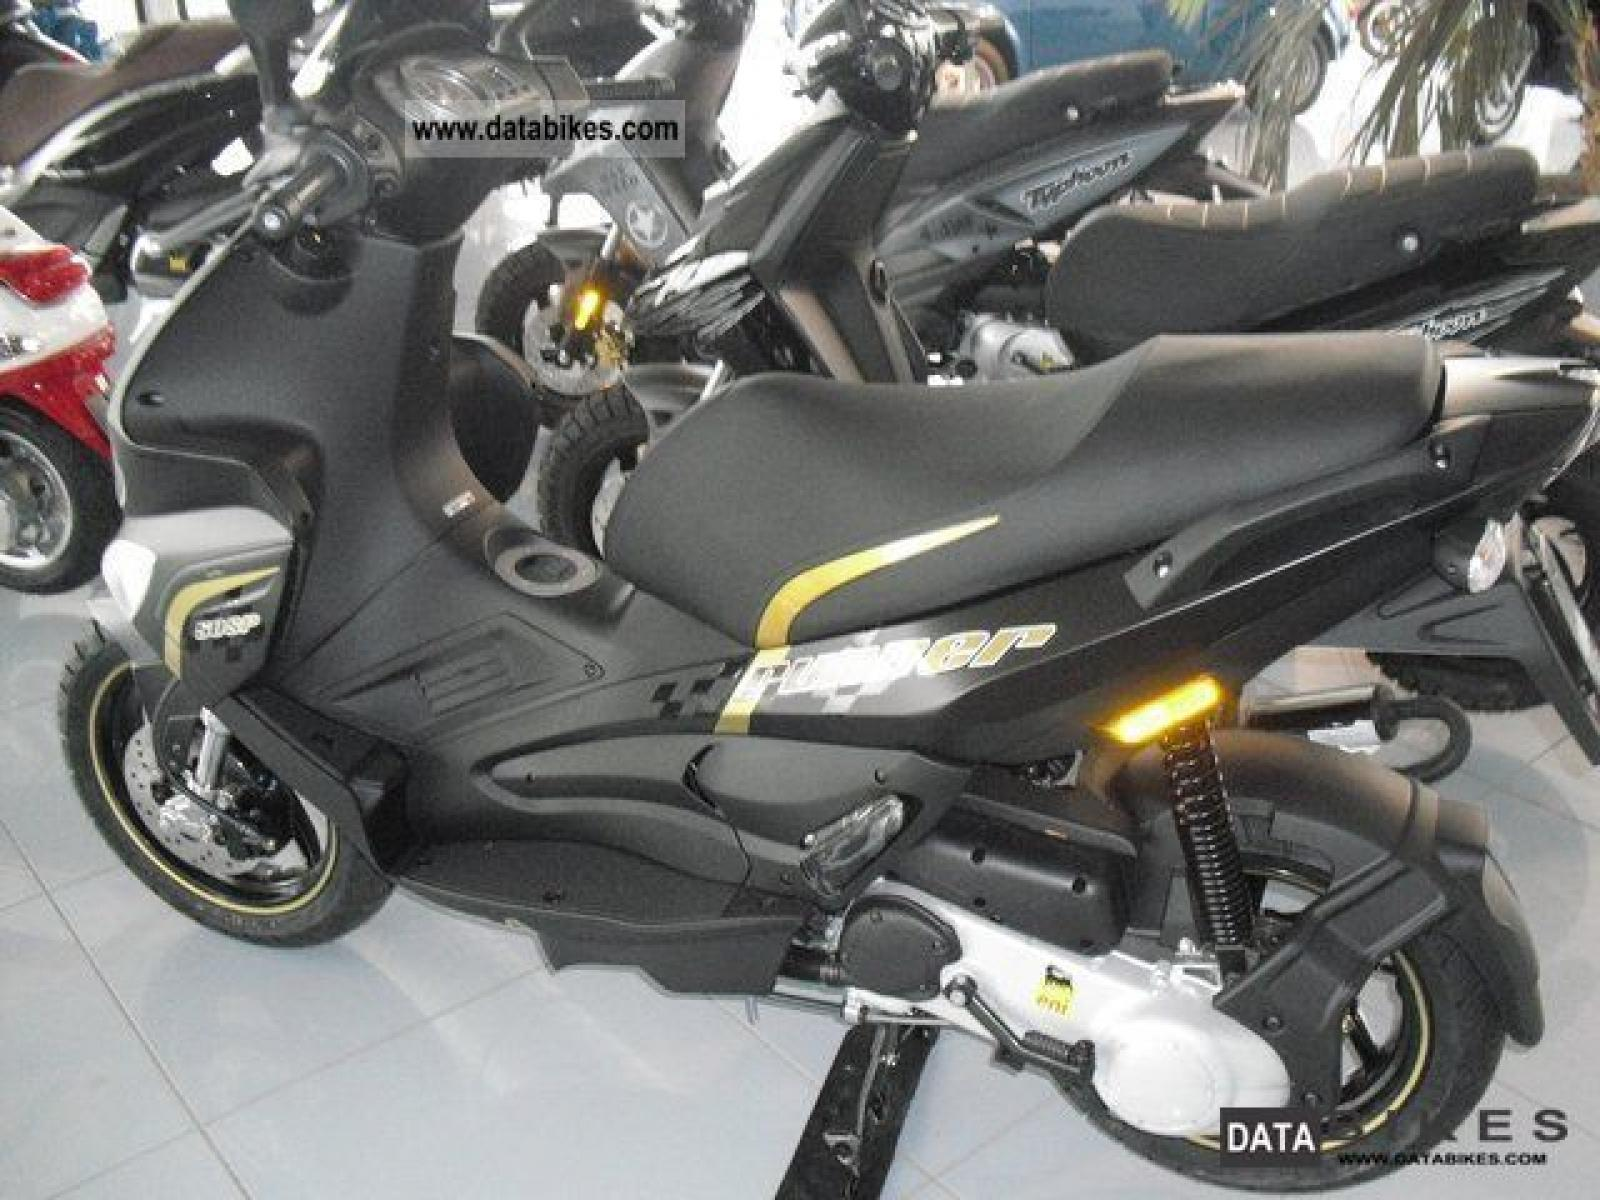 Gilera Runner 50 Black Soul images #76483